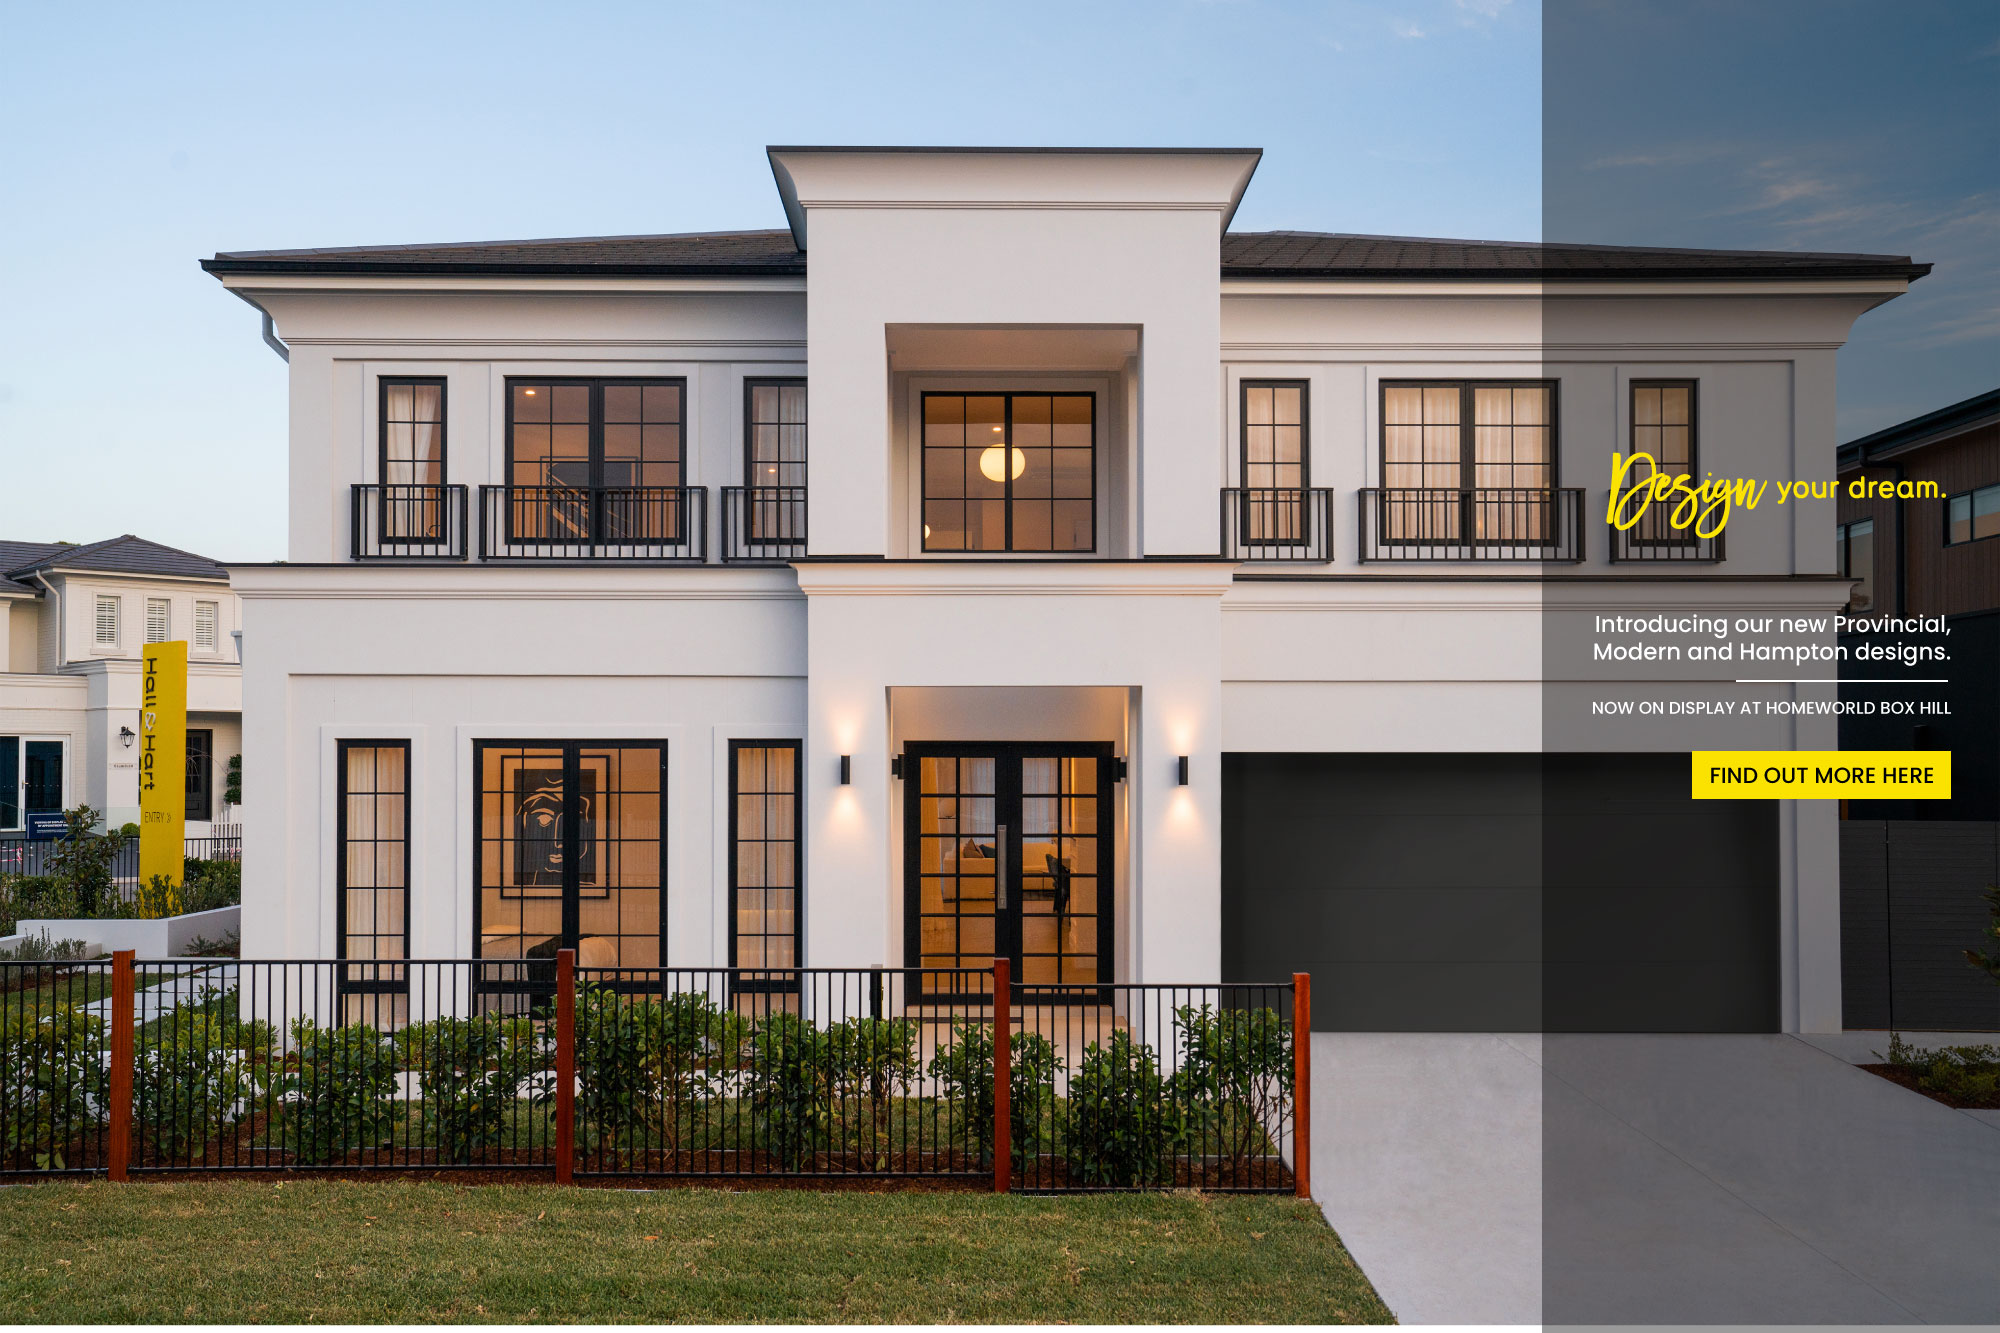 hallharthomes-box-hill-display-homes-now-open-home-pagev7